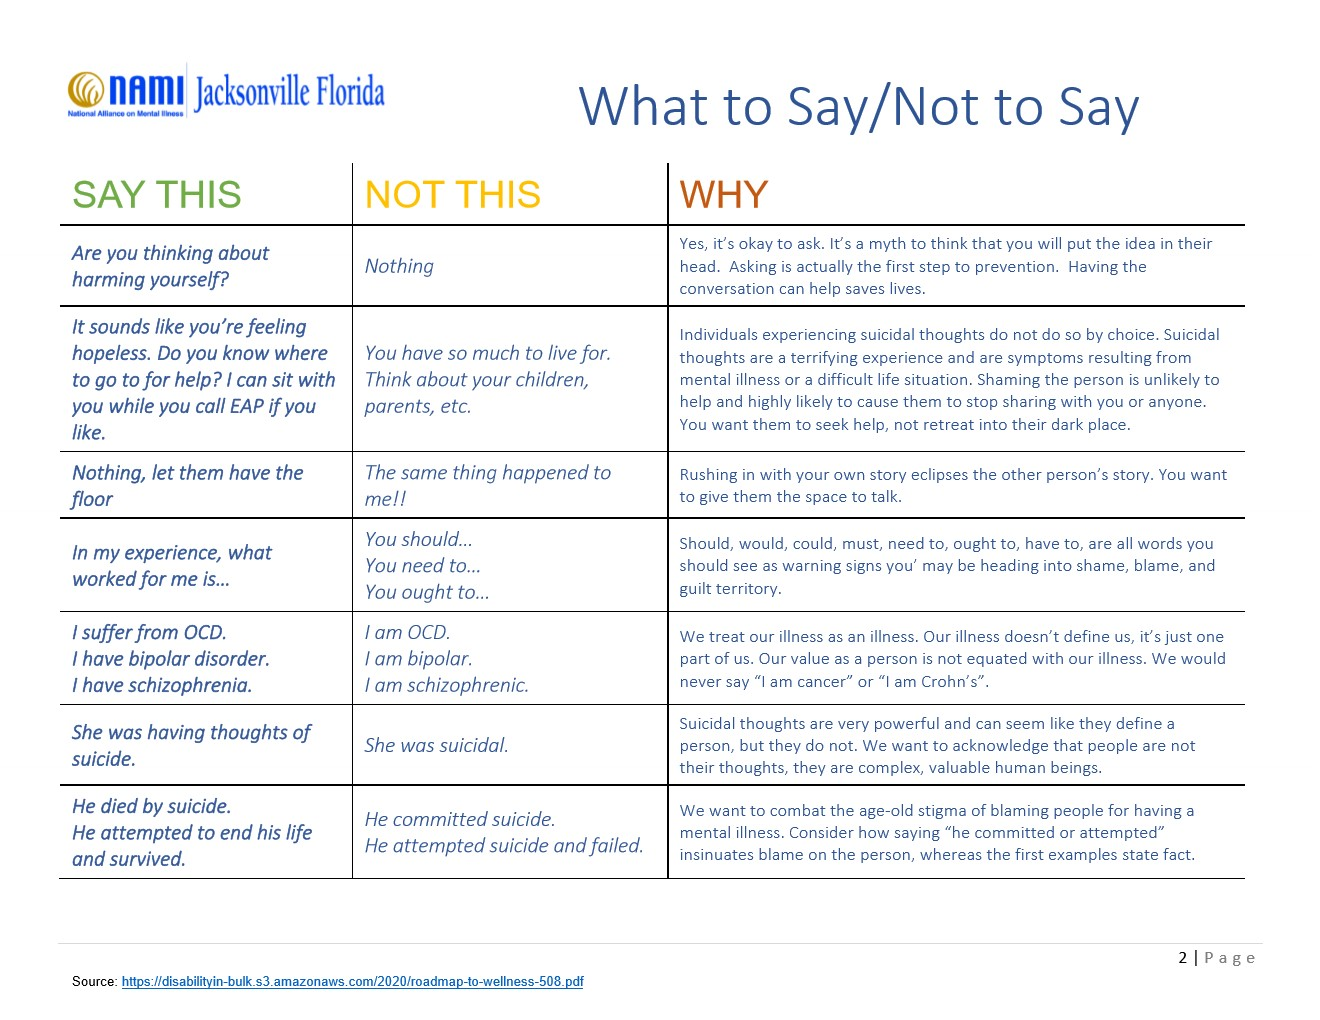 What to Say Not to Say (Final)_2